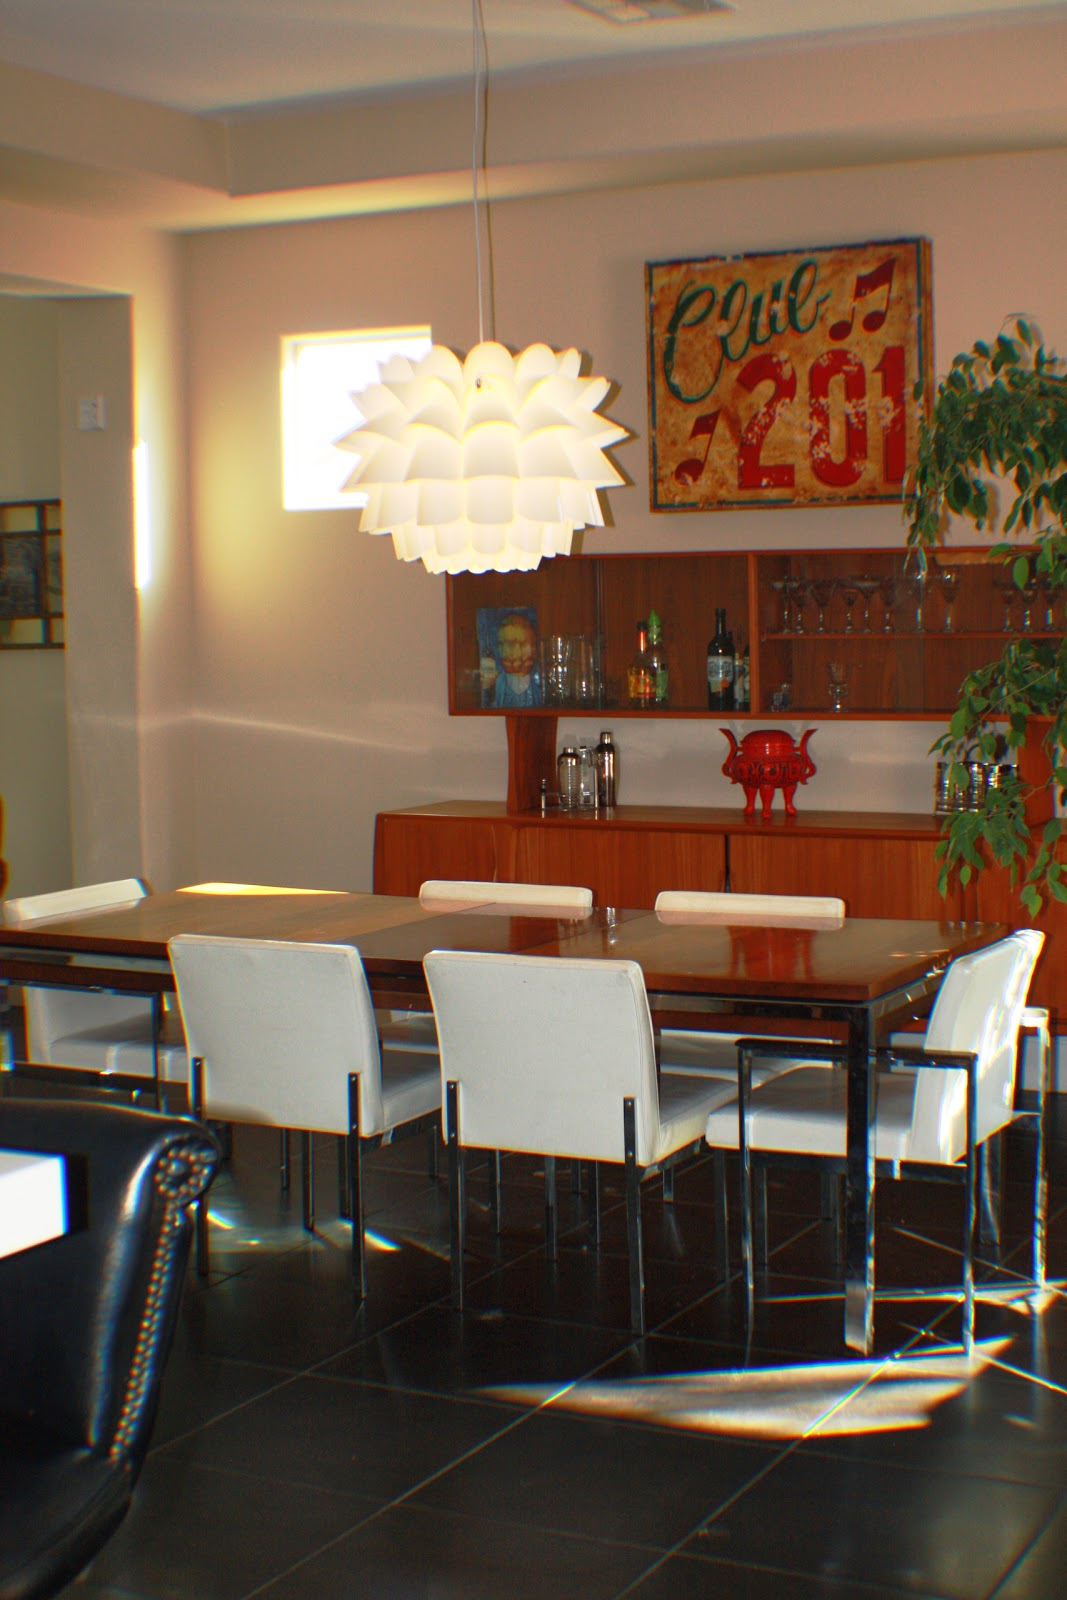 Dining Table On Craigslist Mid Century Wooden Cantilever Chair